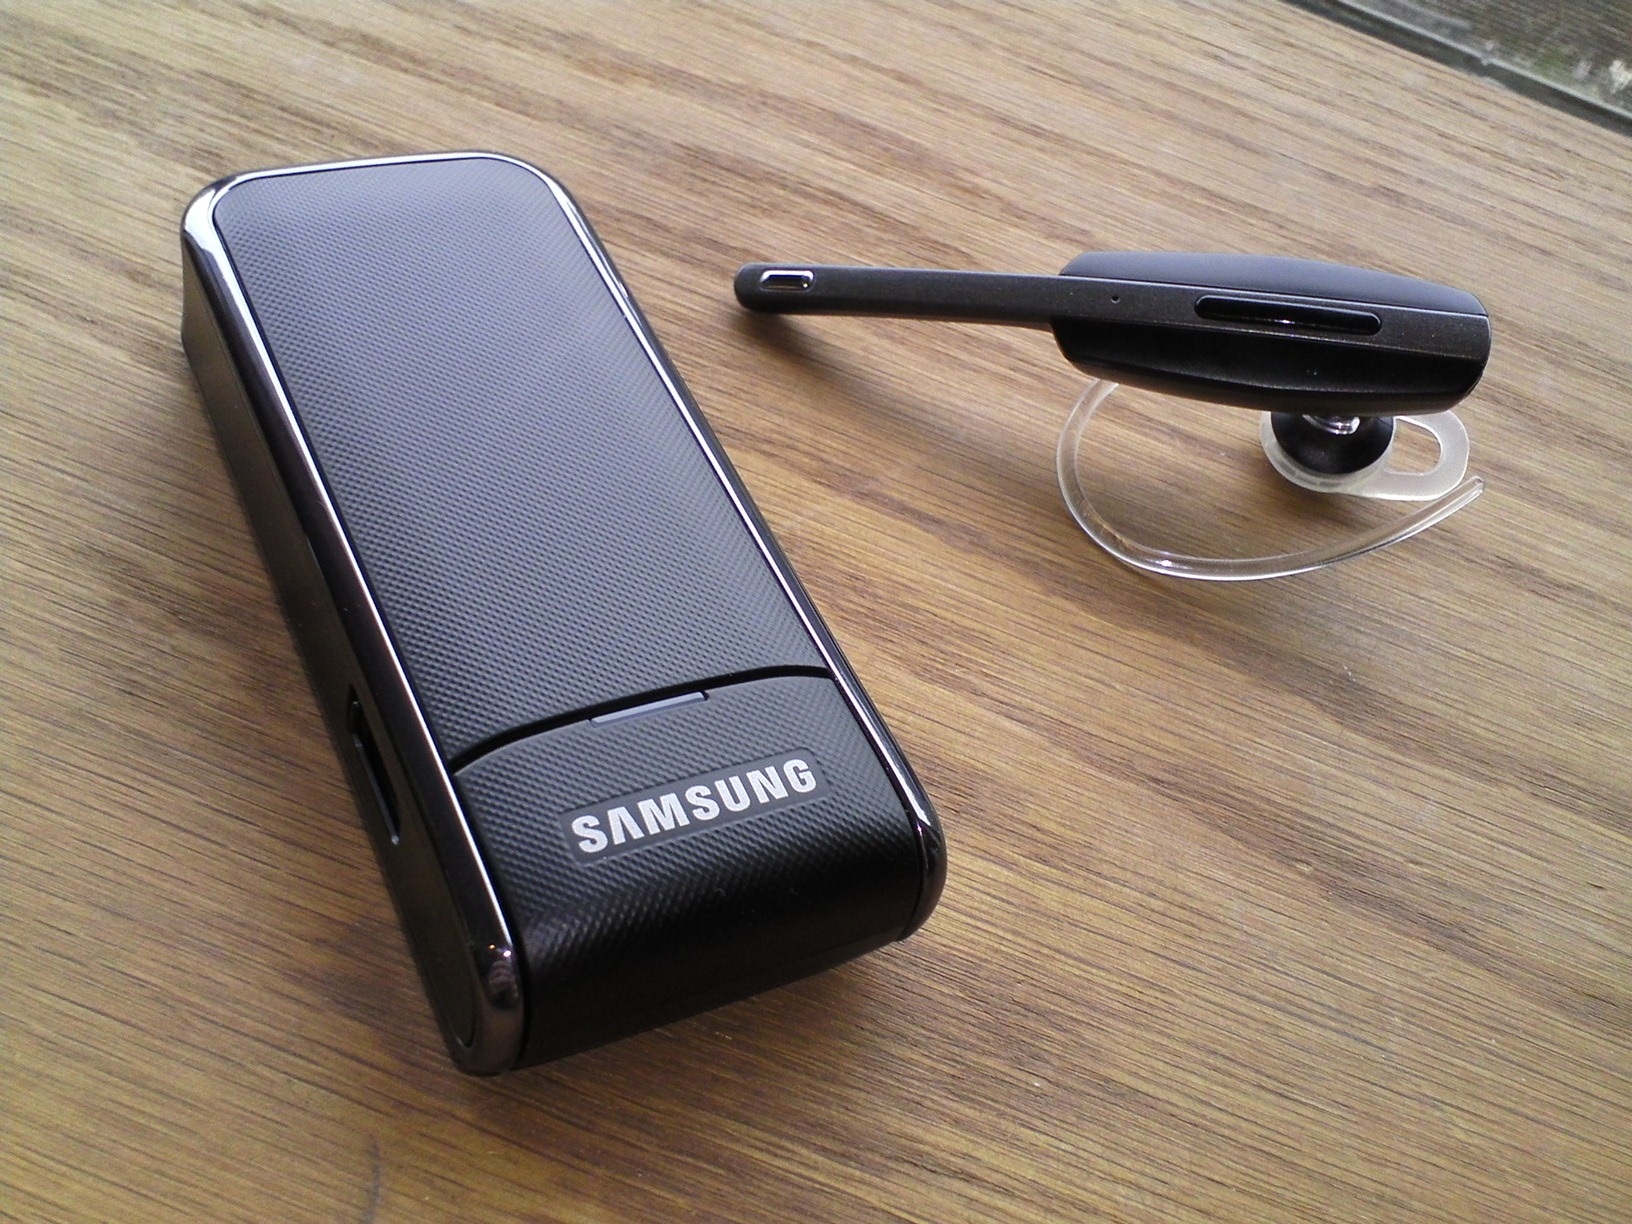 Review Samsung Hm7000 Bluetooth Headset You Ll Still Look Like A You Know But It Works Great